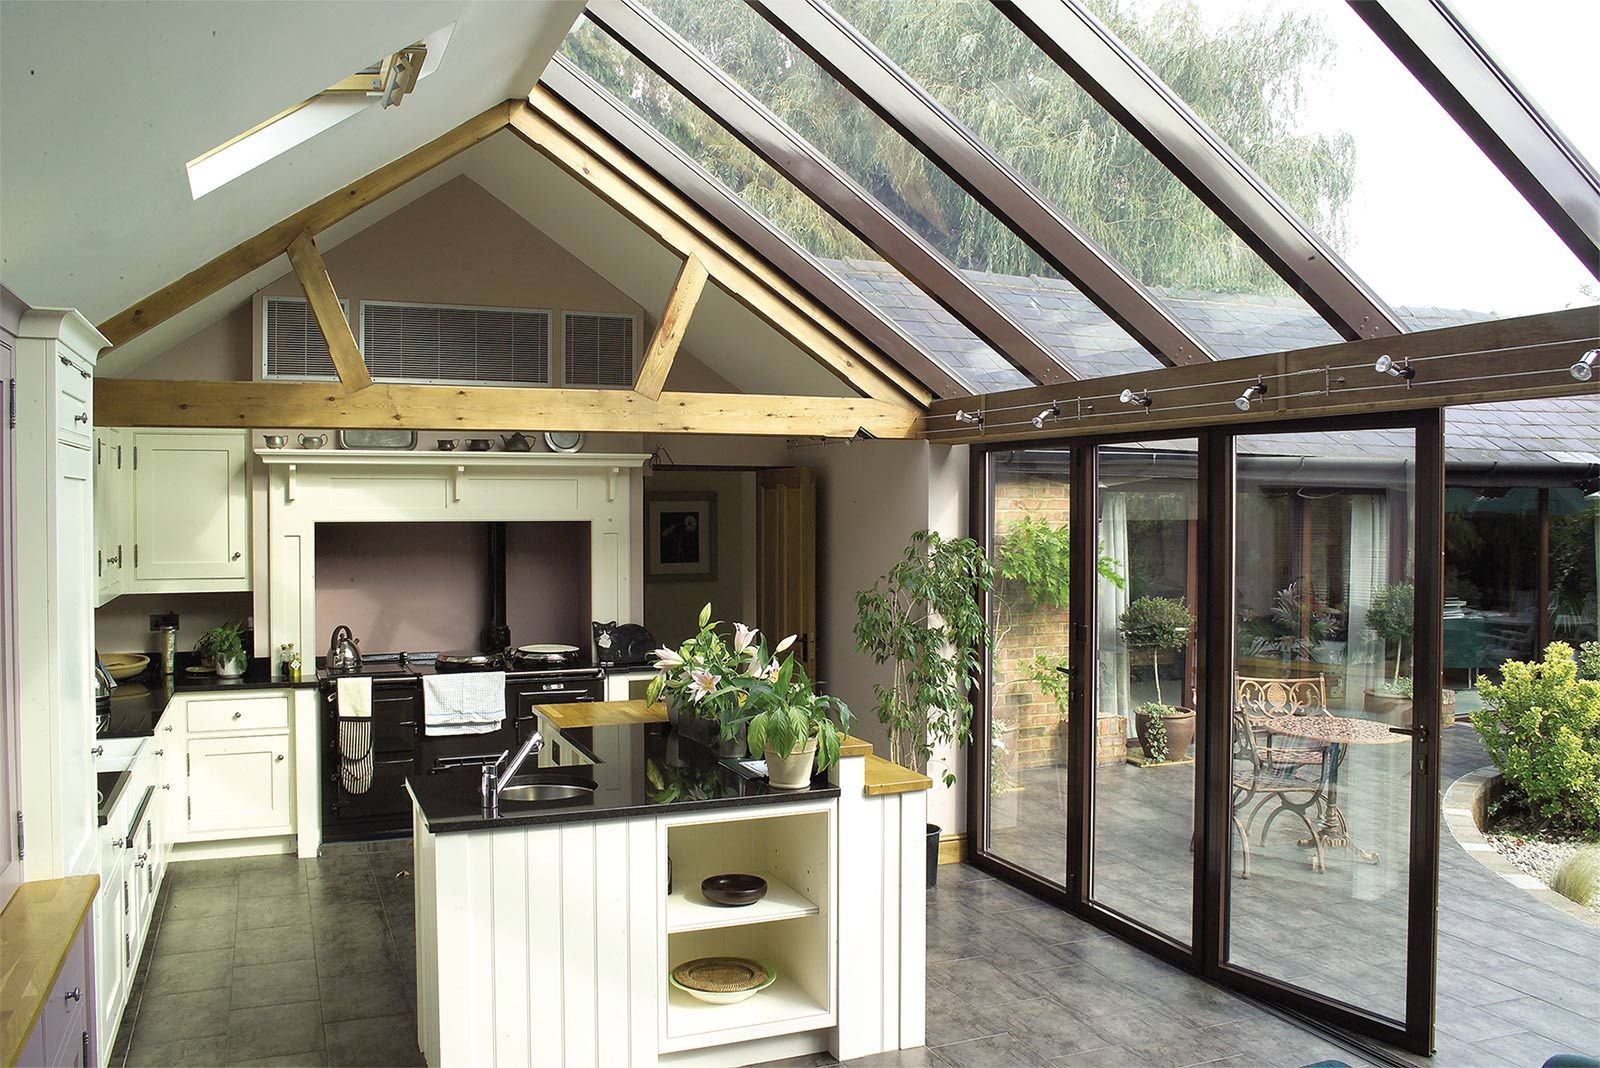 Conservatory extensions modern glass kitchen extensions for House plans with conservatory